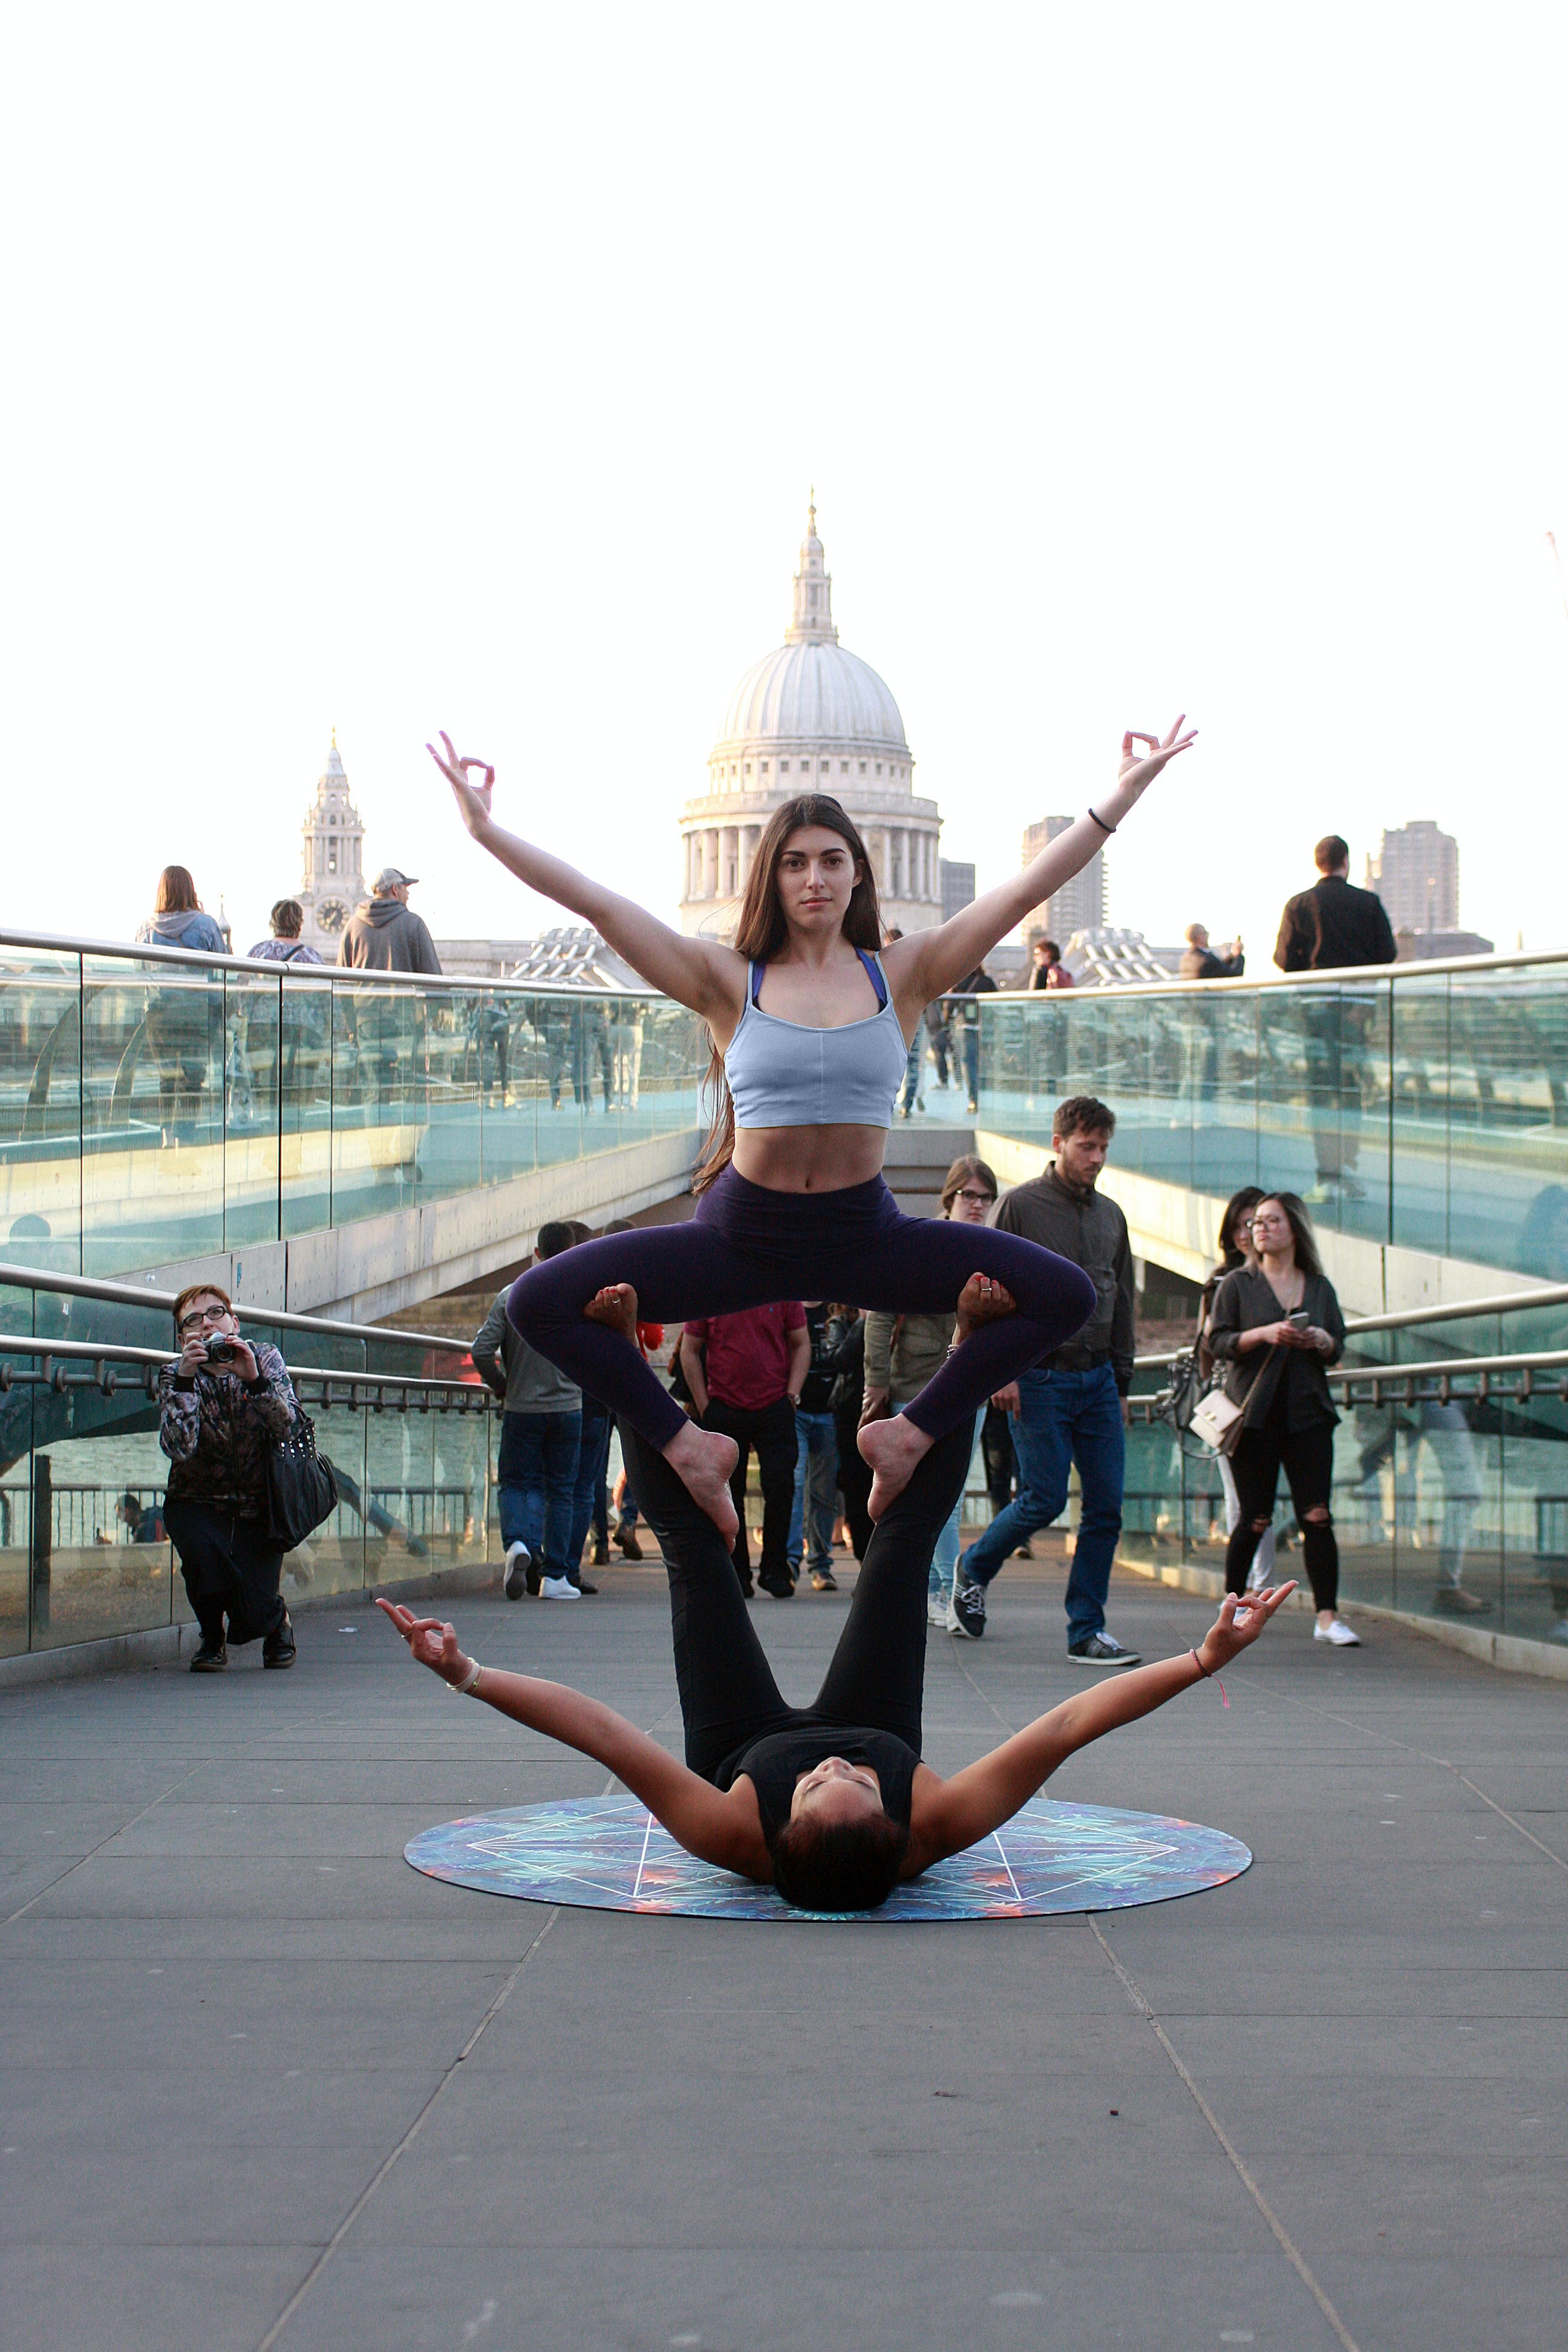 Two Women Performing Yoga on Street at Daytime